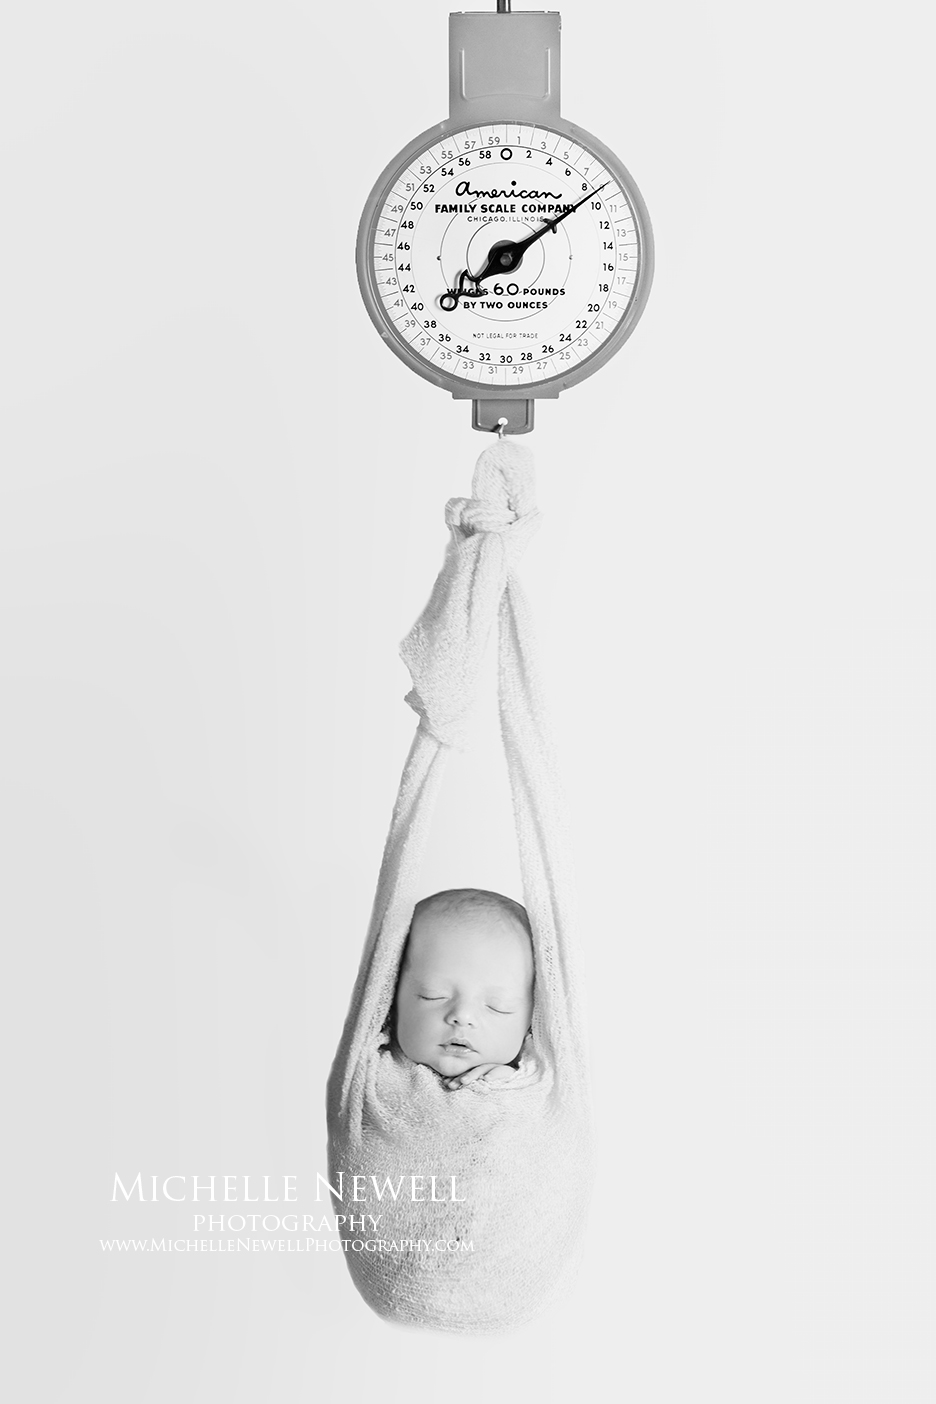 *** Safety Note *** This image was shot and later edited as a composite of multiple images for baby's safety.